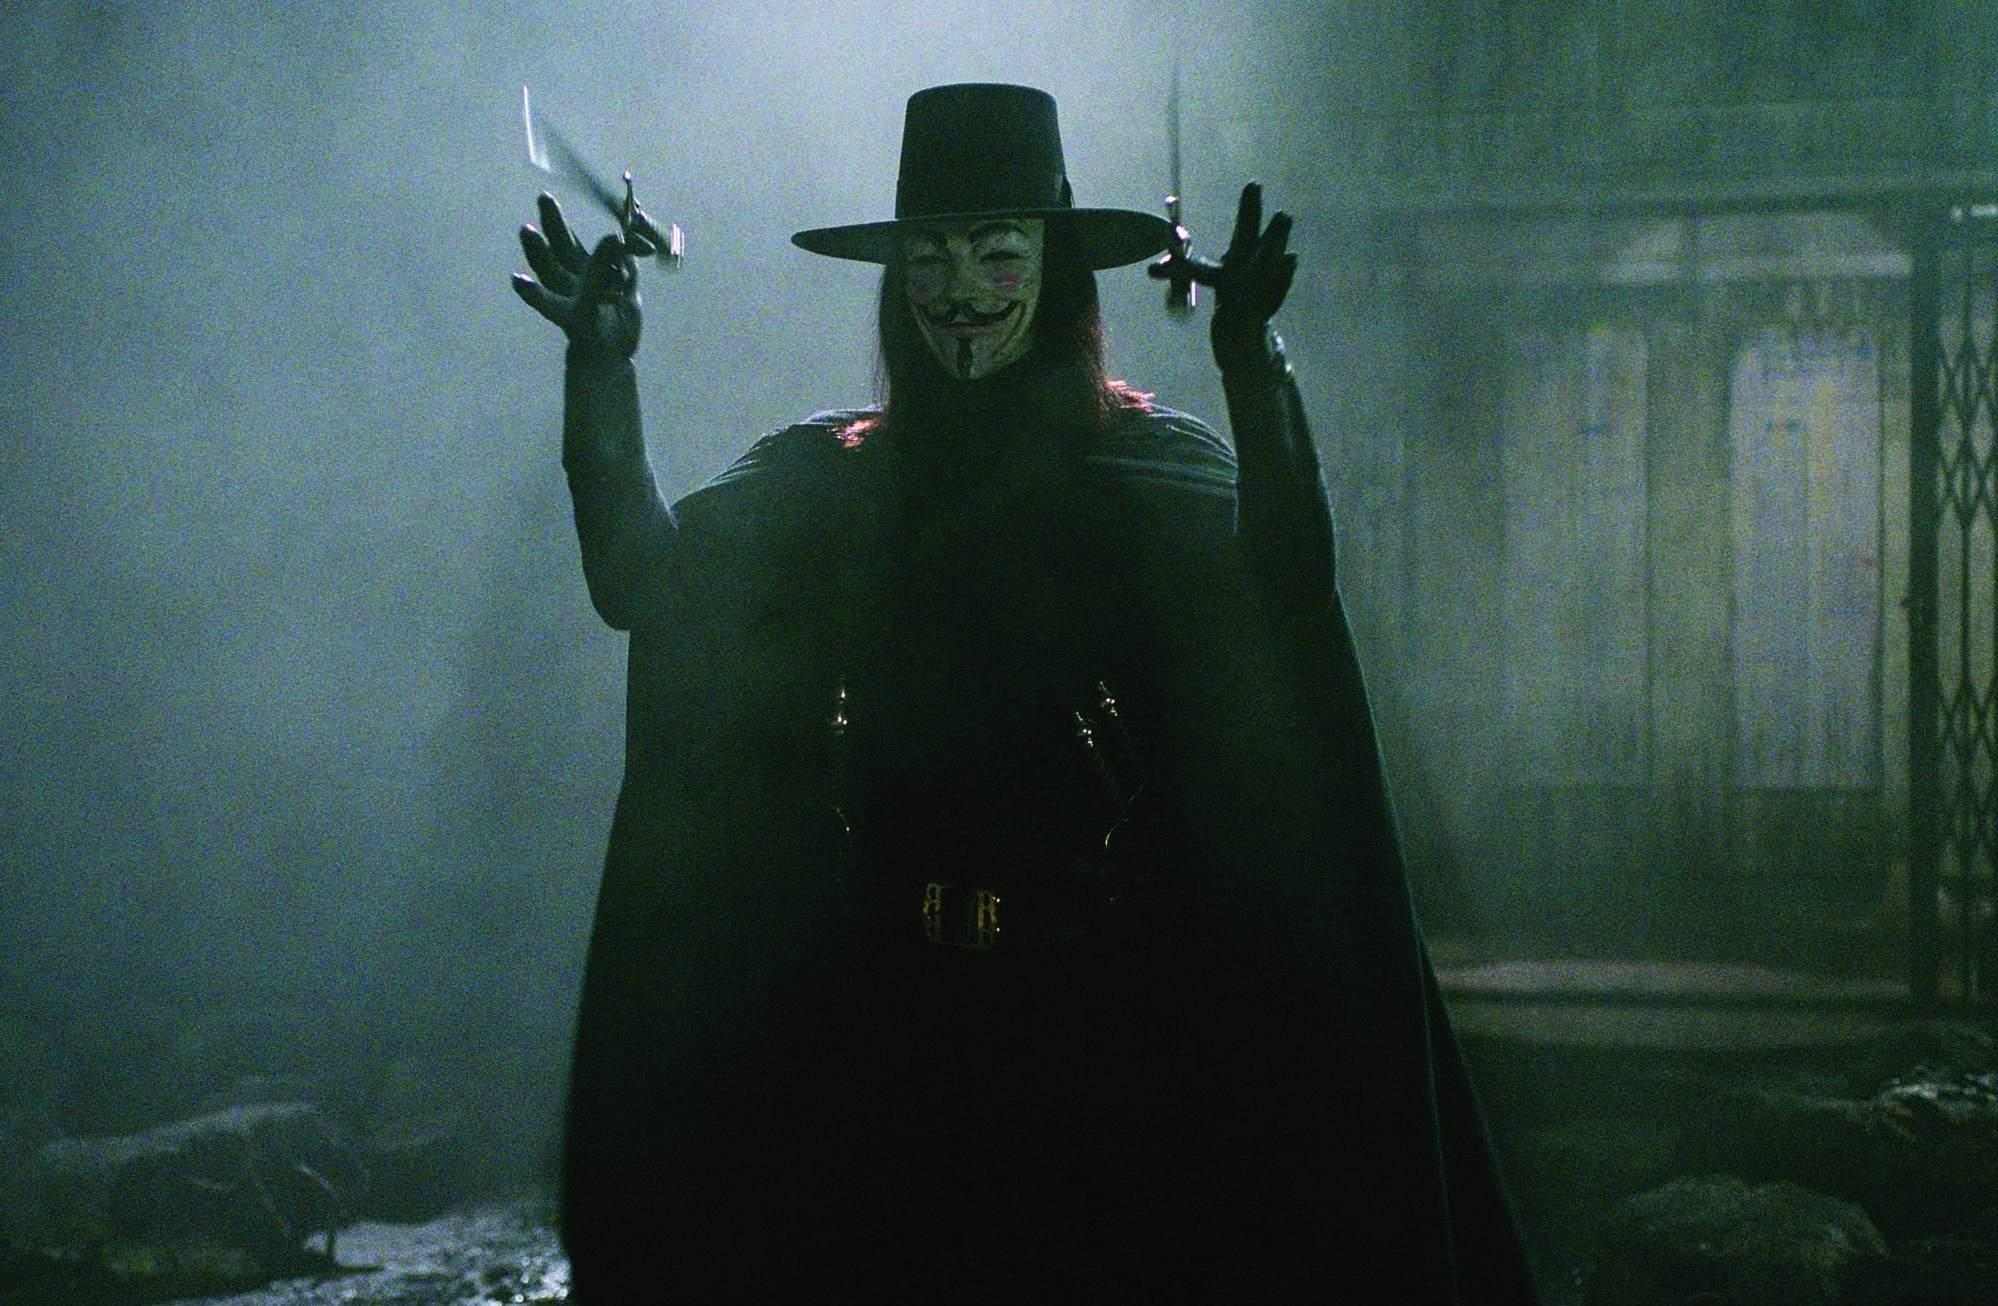 v for vendetta character essay Get access to v for vendetta essays only from anti essays listed results 1 - 30 get studying today and get the grades you want only at antiessayscom.